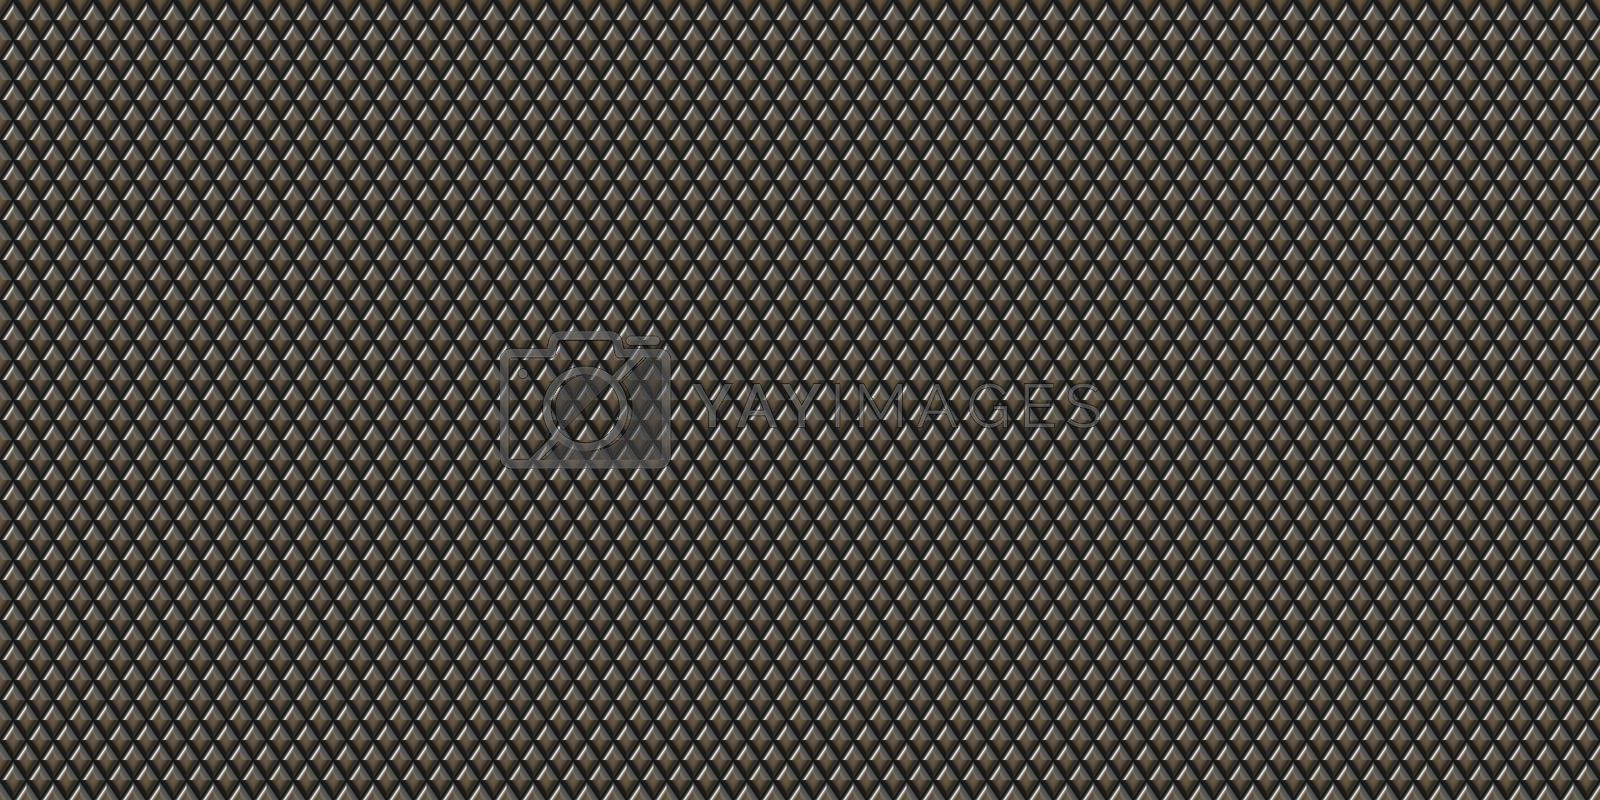 Knurl contact surface background. Metal rhombus pattern surface. Knurling touch texture.